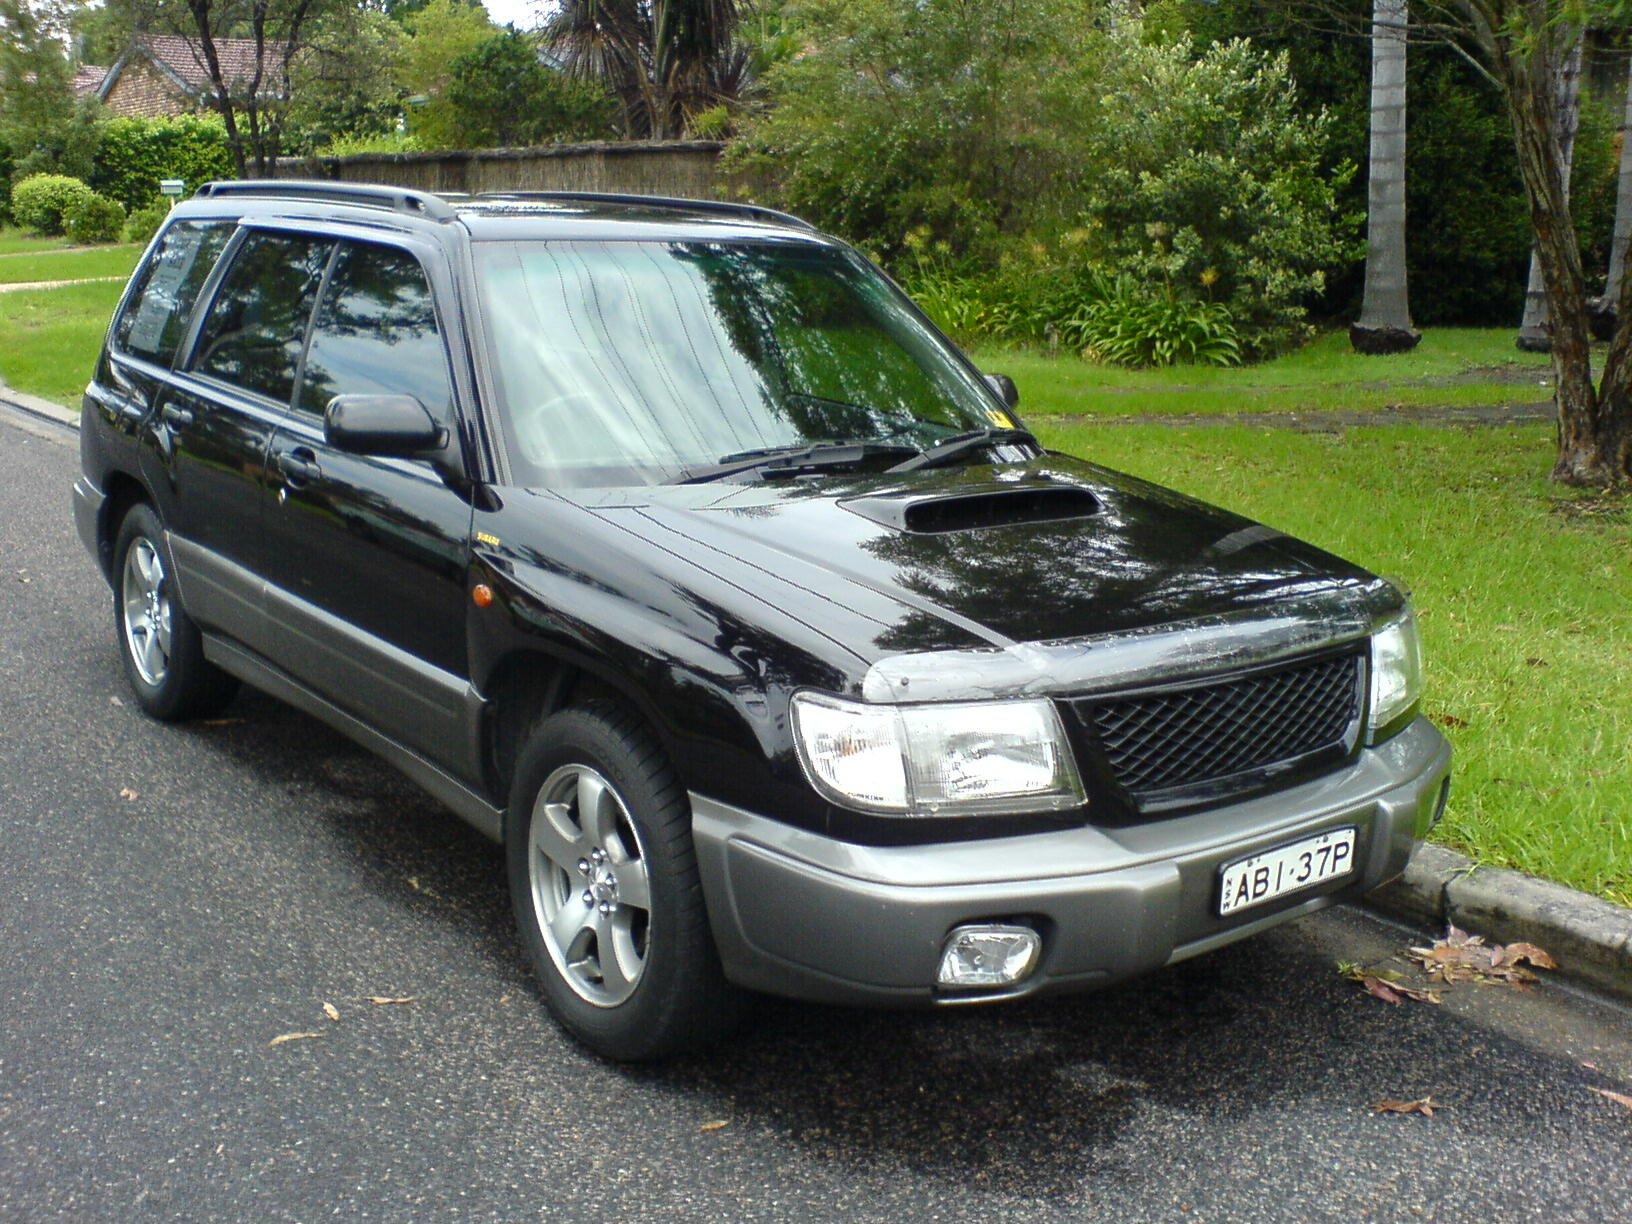 Where Is Subaru From >> 1998 SUBARU FORESTER - Image #12